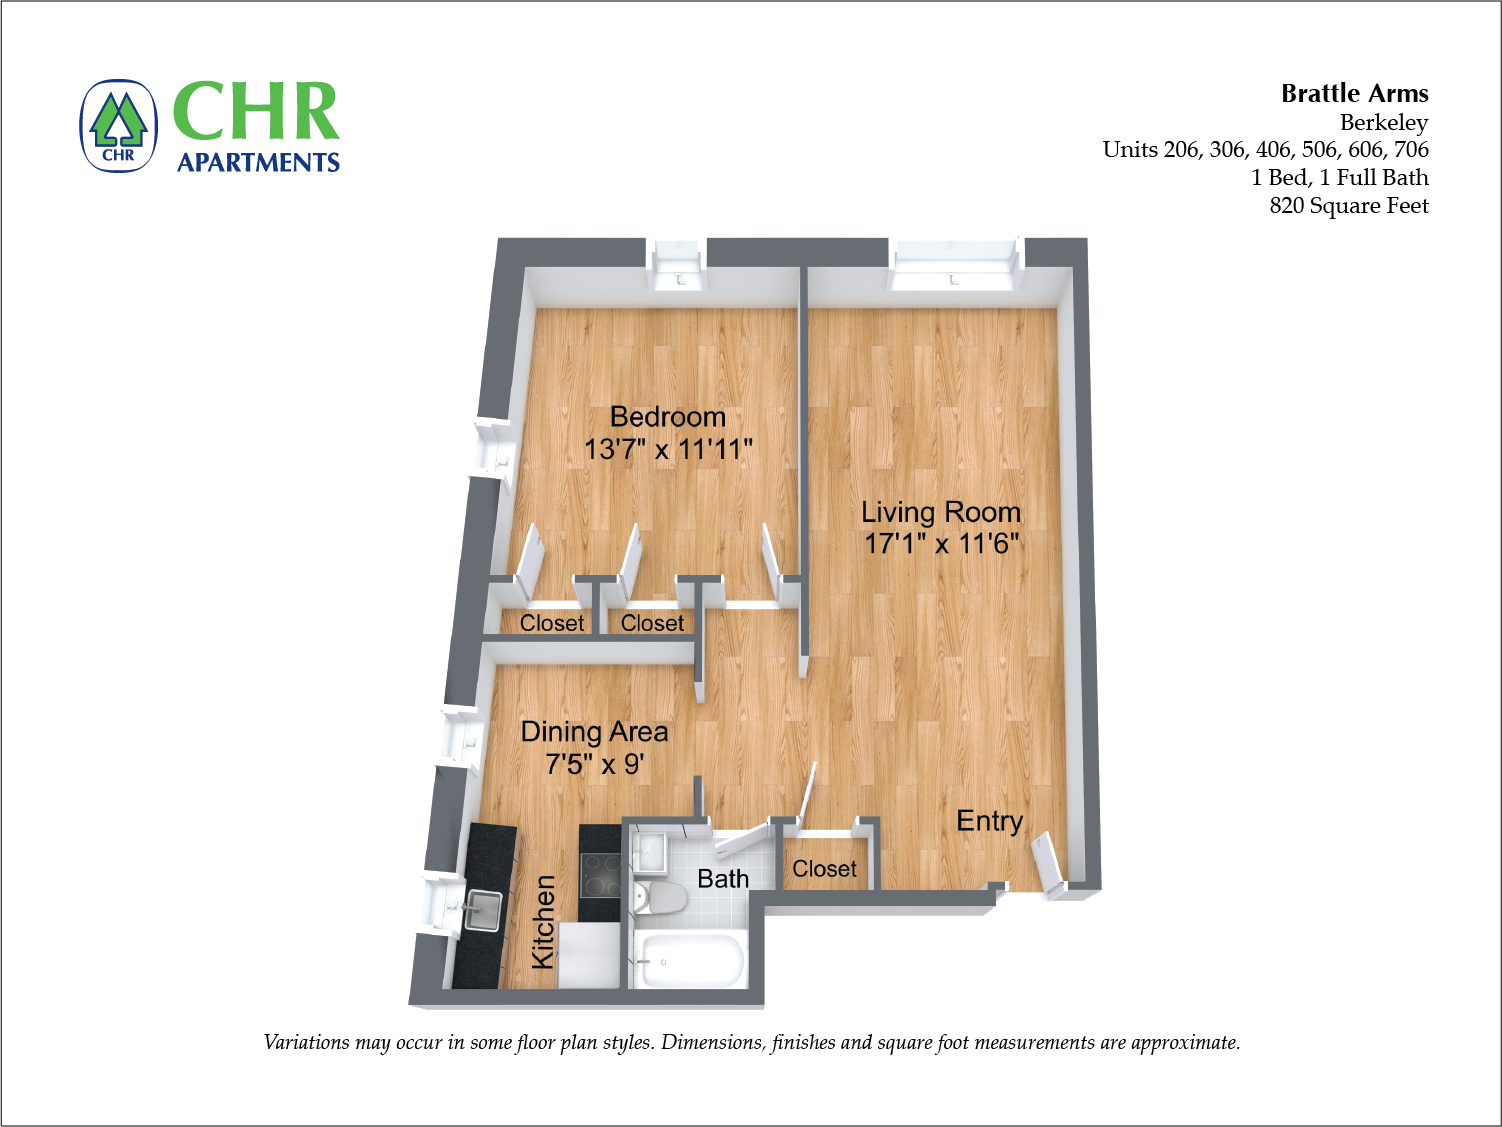 Click to view Floor plan Brattle Arms - 1 Bedroom image 3